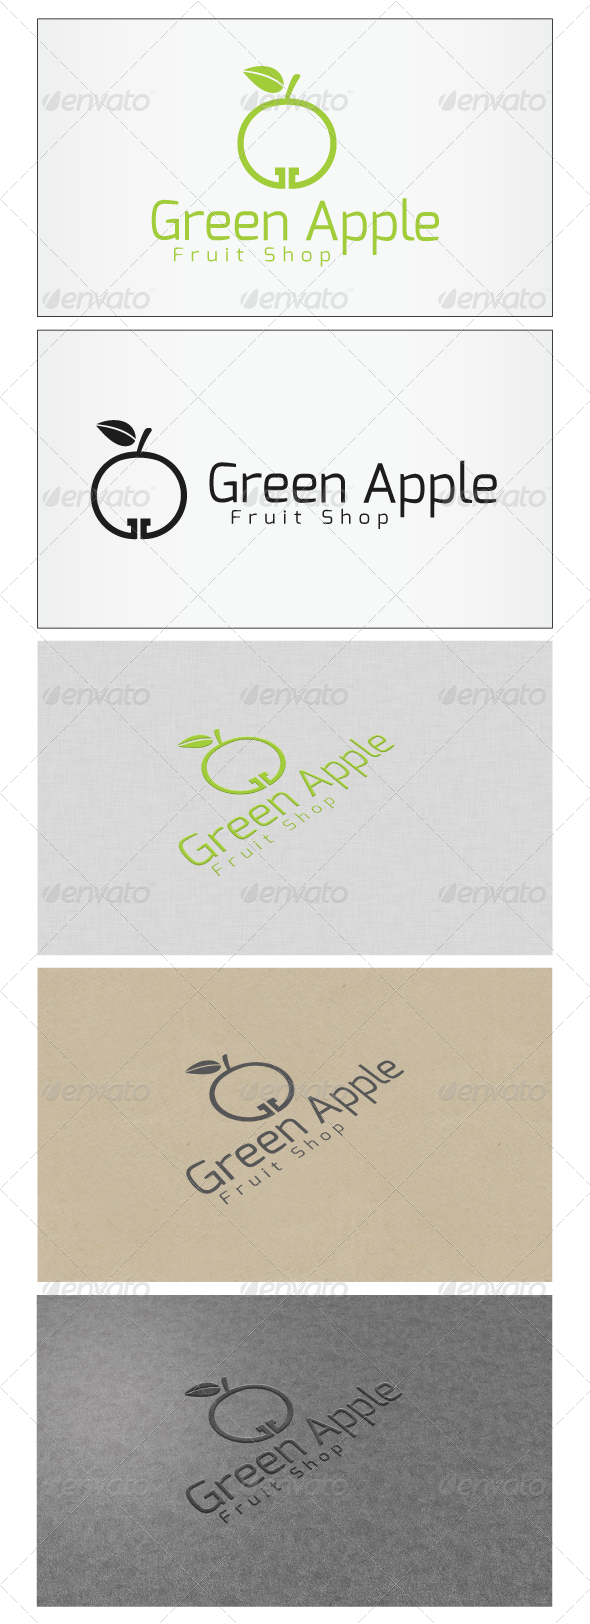 Green Apple Logo GraphicRiver Re sizable Vector EPS and